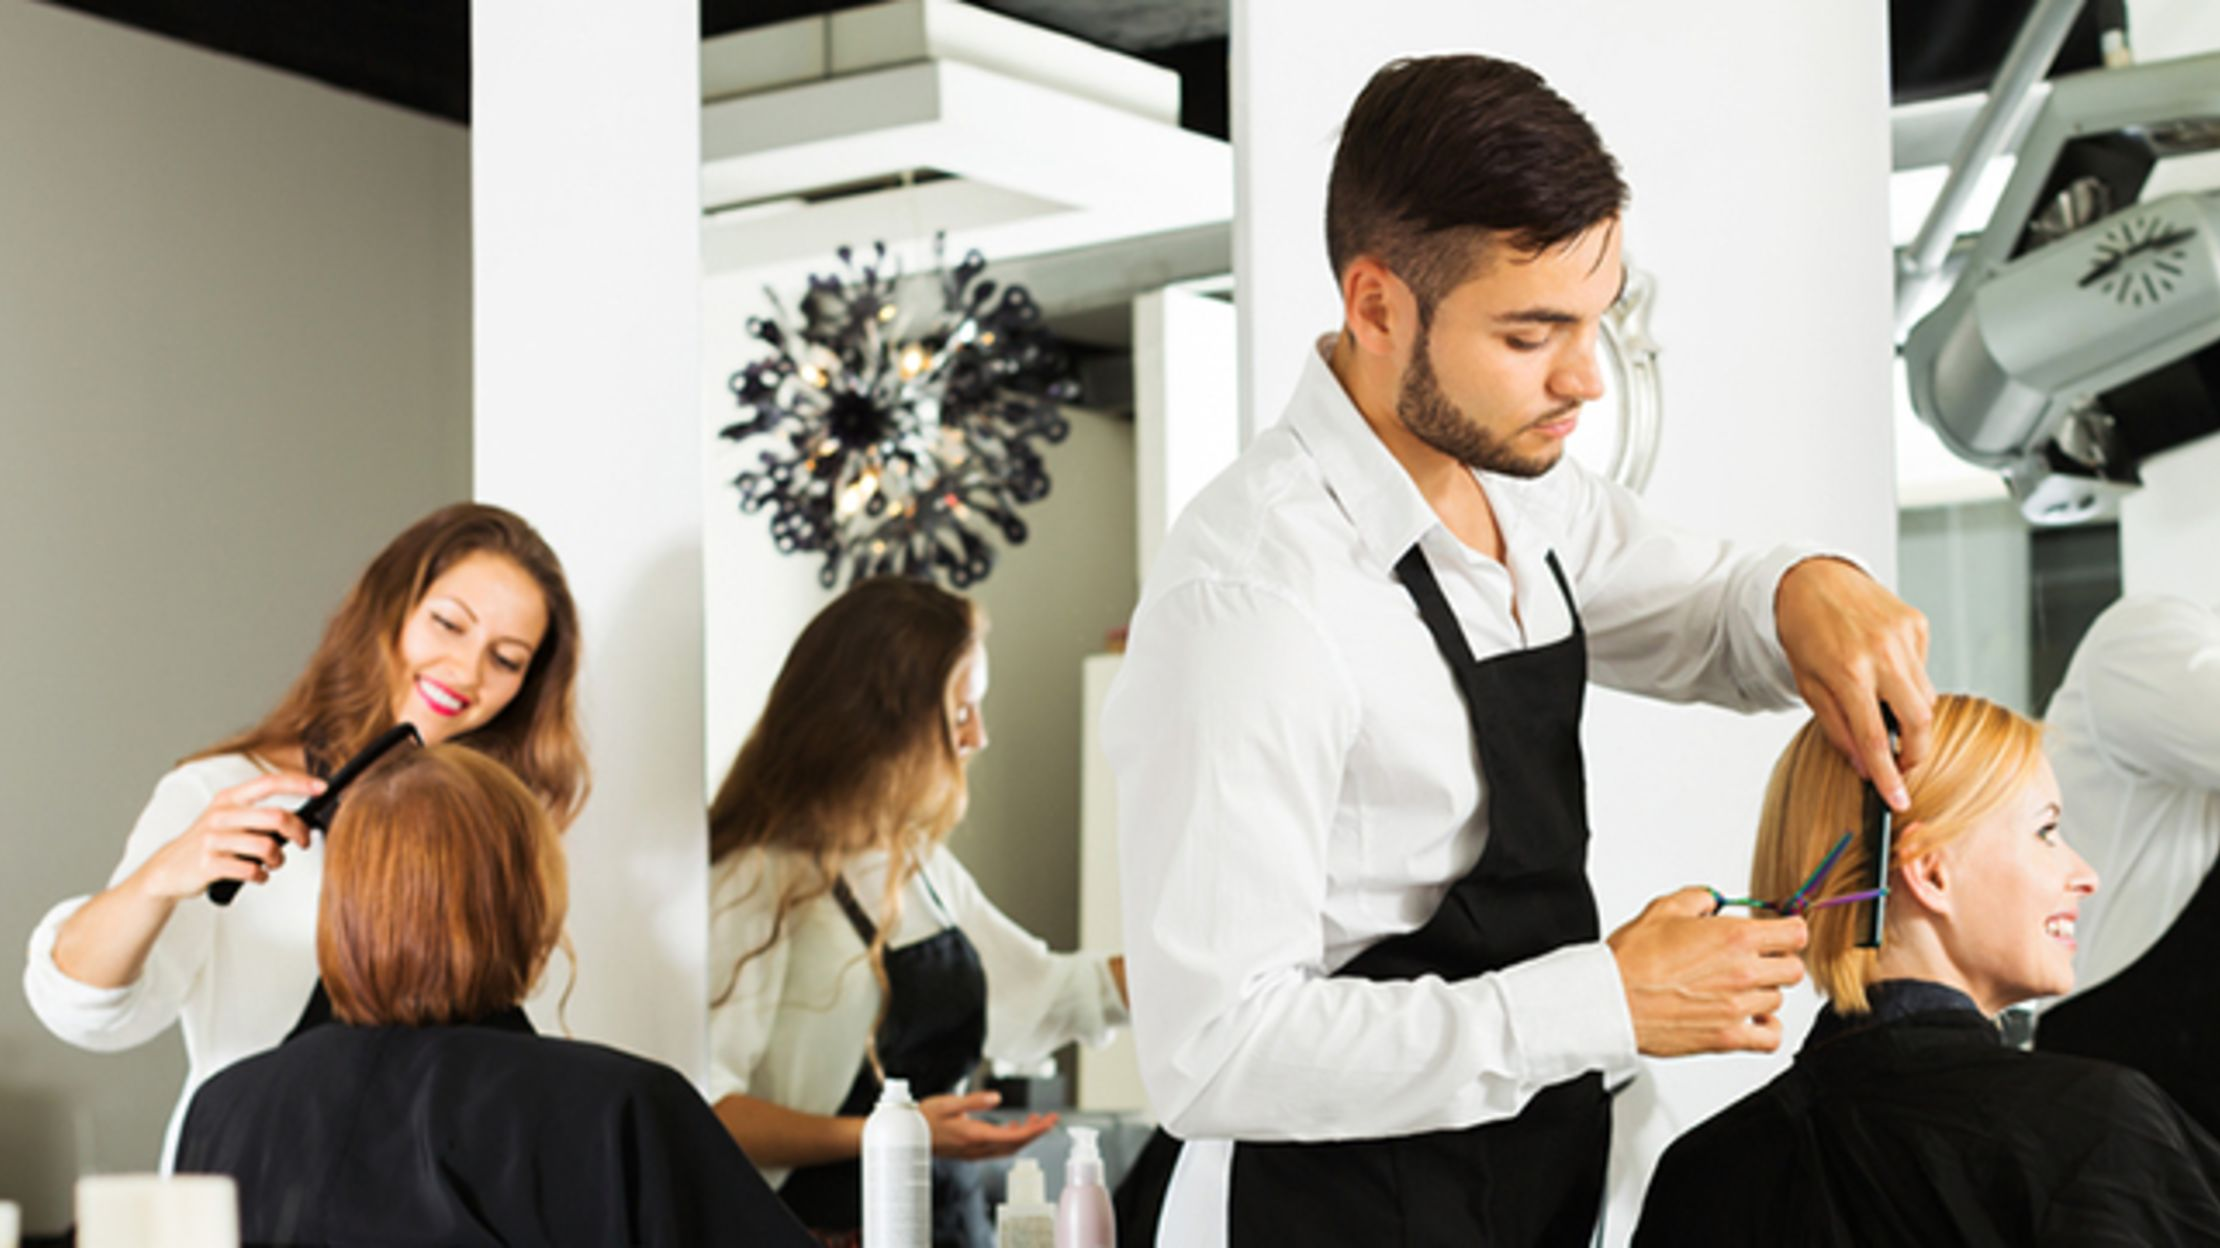 hairdressers - photo #13